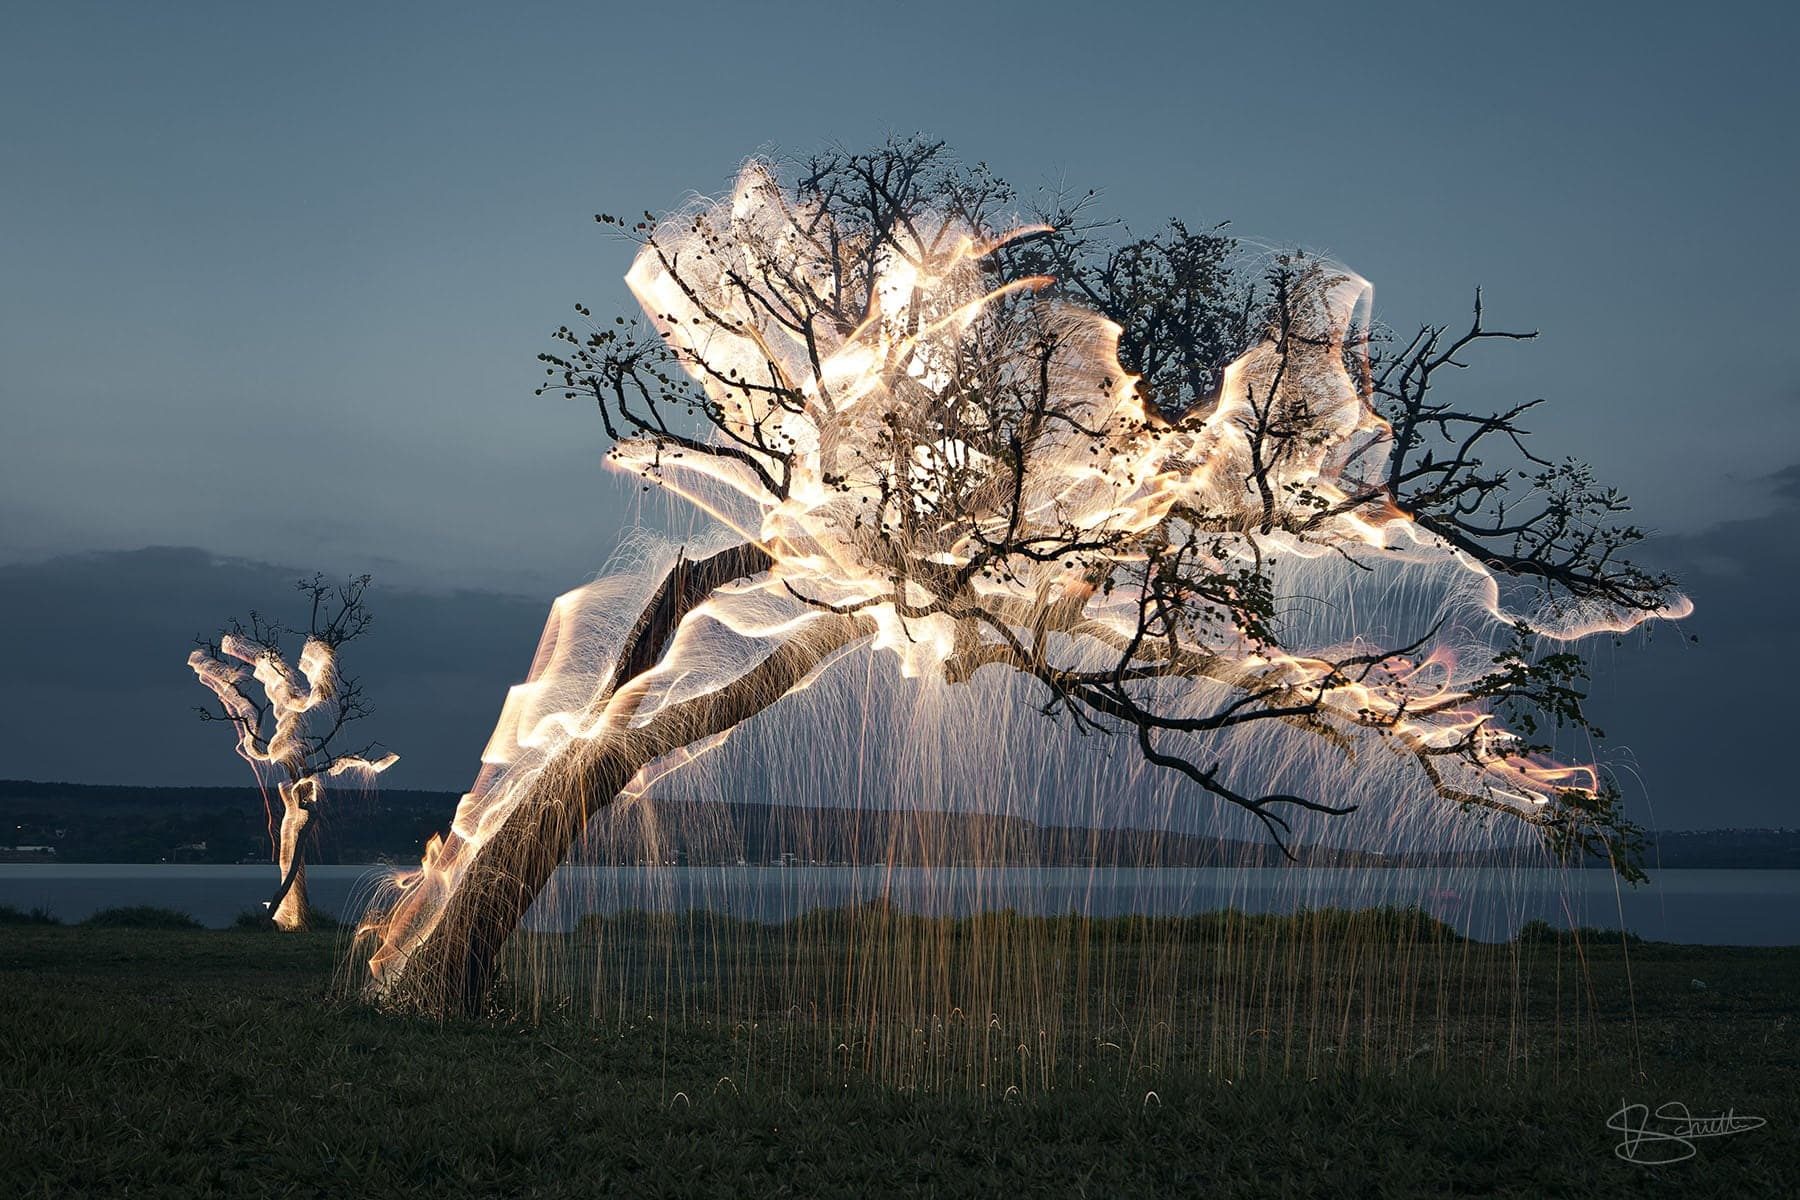 Vitor Schietti's Dynamic Light Paintings Highlight Nature's Inherent Beauty -trees, photography, nature, Light Painting, light, cities, big